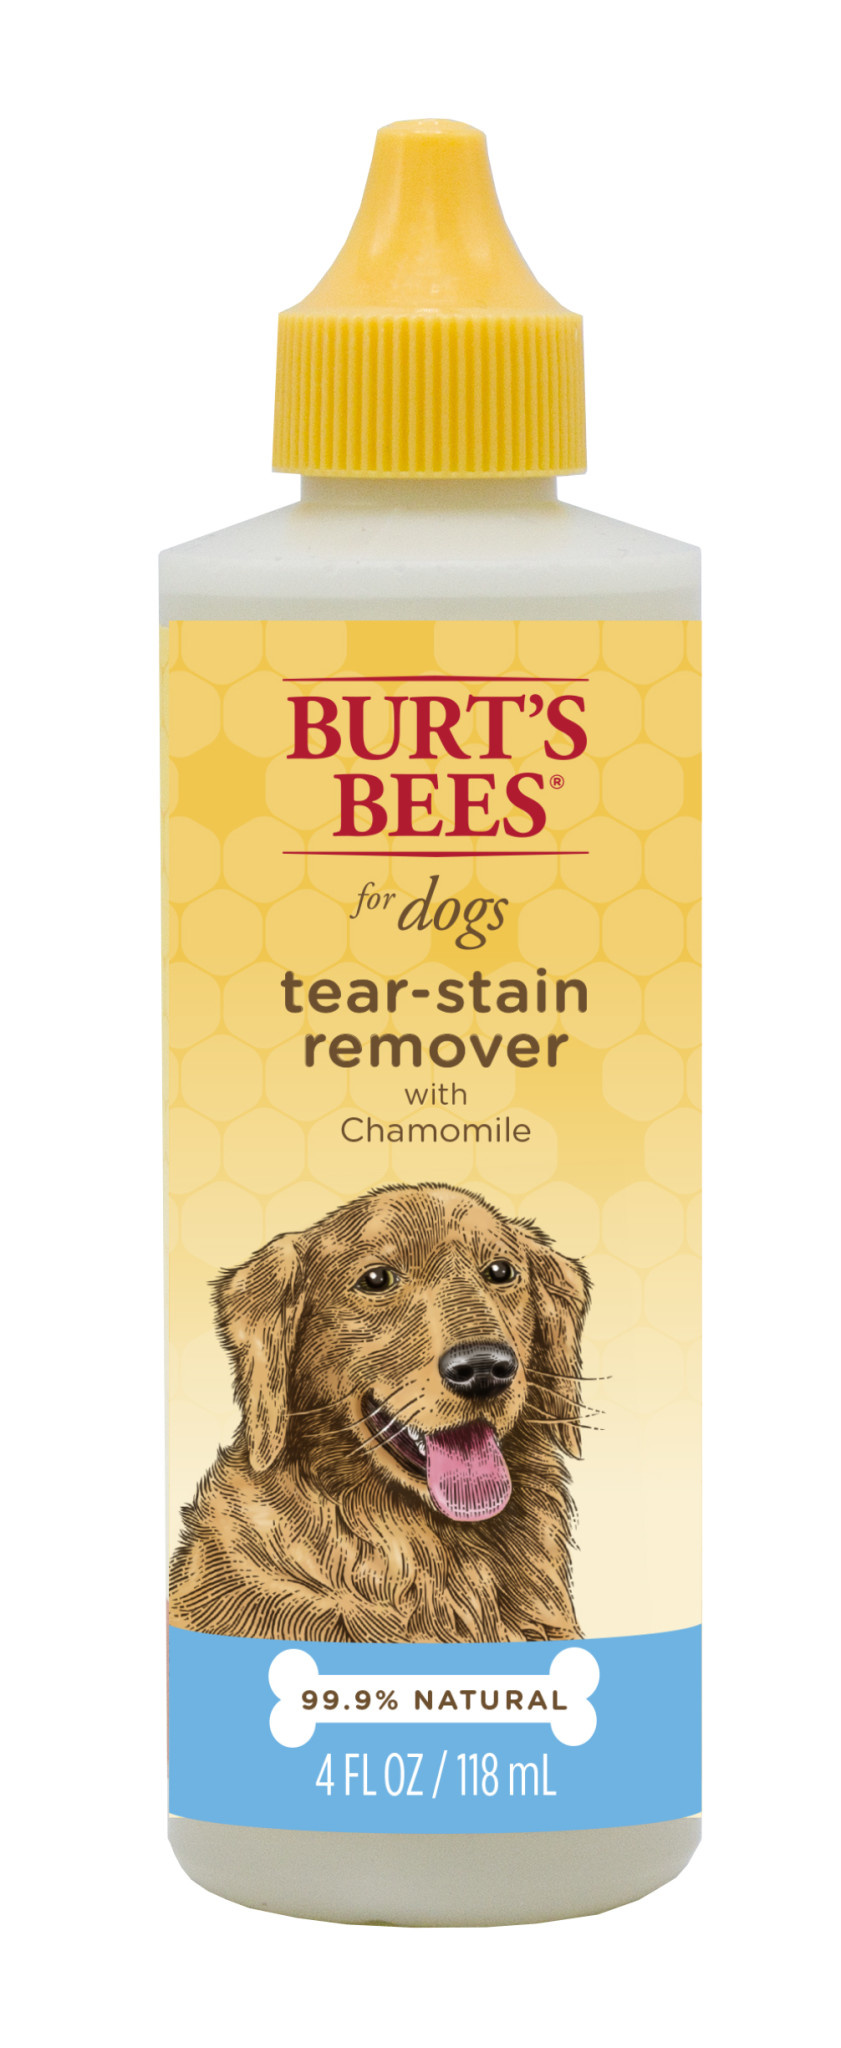 Burt's Bees Burt's Bees Tear Stain Remover 4 oz